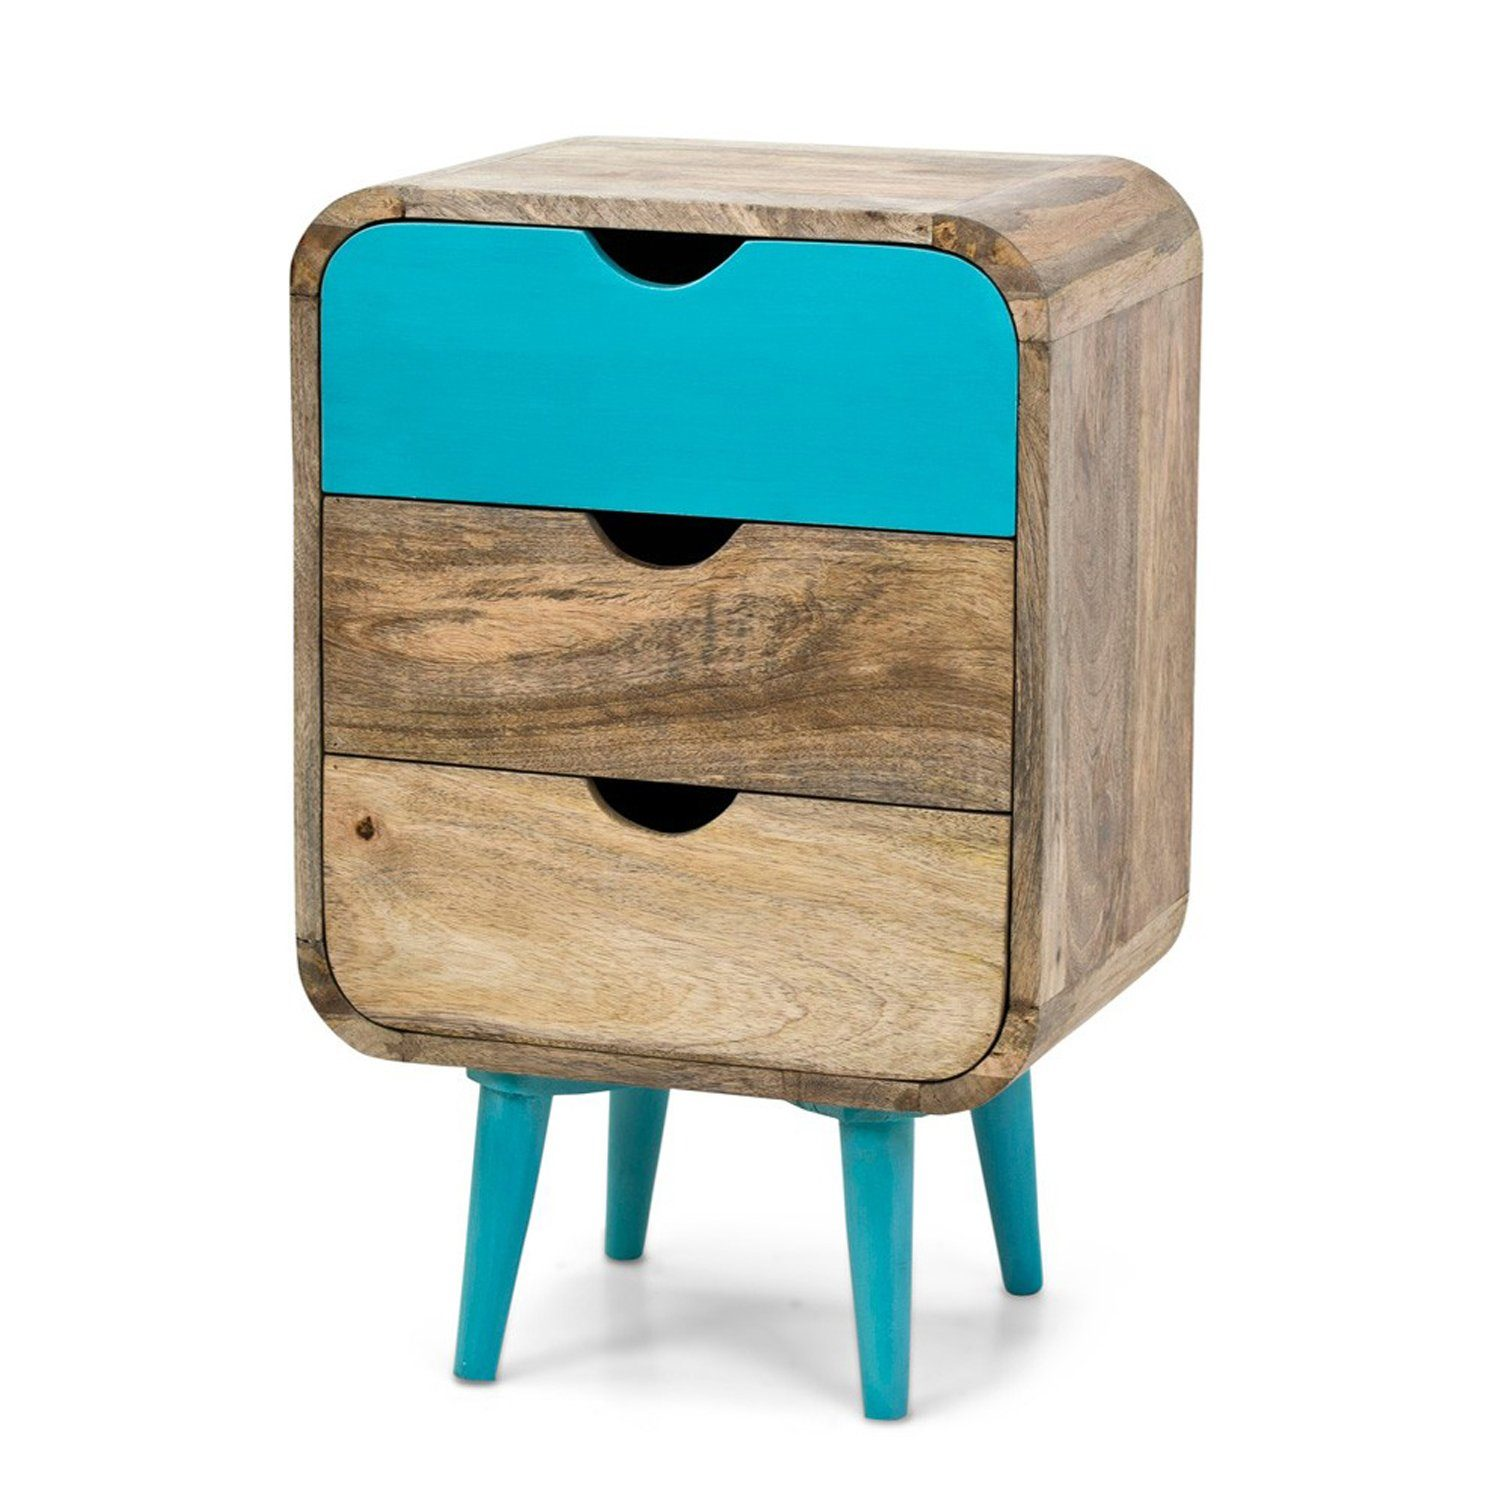 Benalla Solid Wood Bed Side Table With 3 Drawers - Lakkadhaara